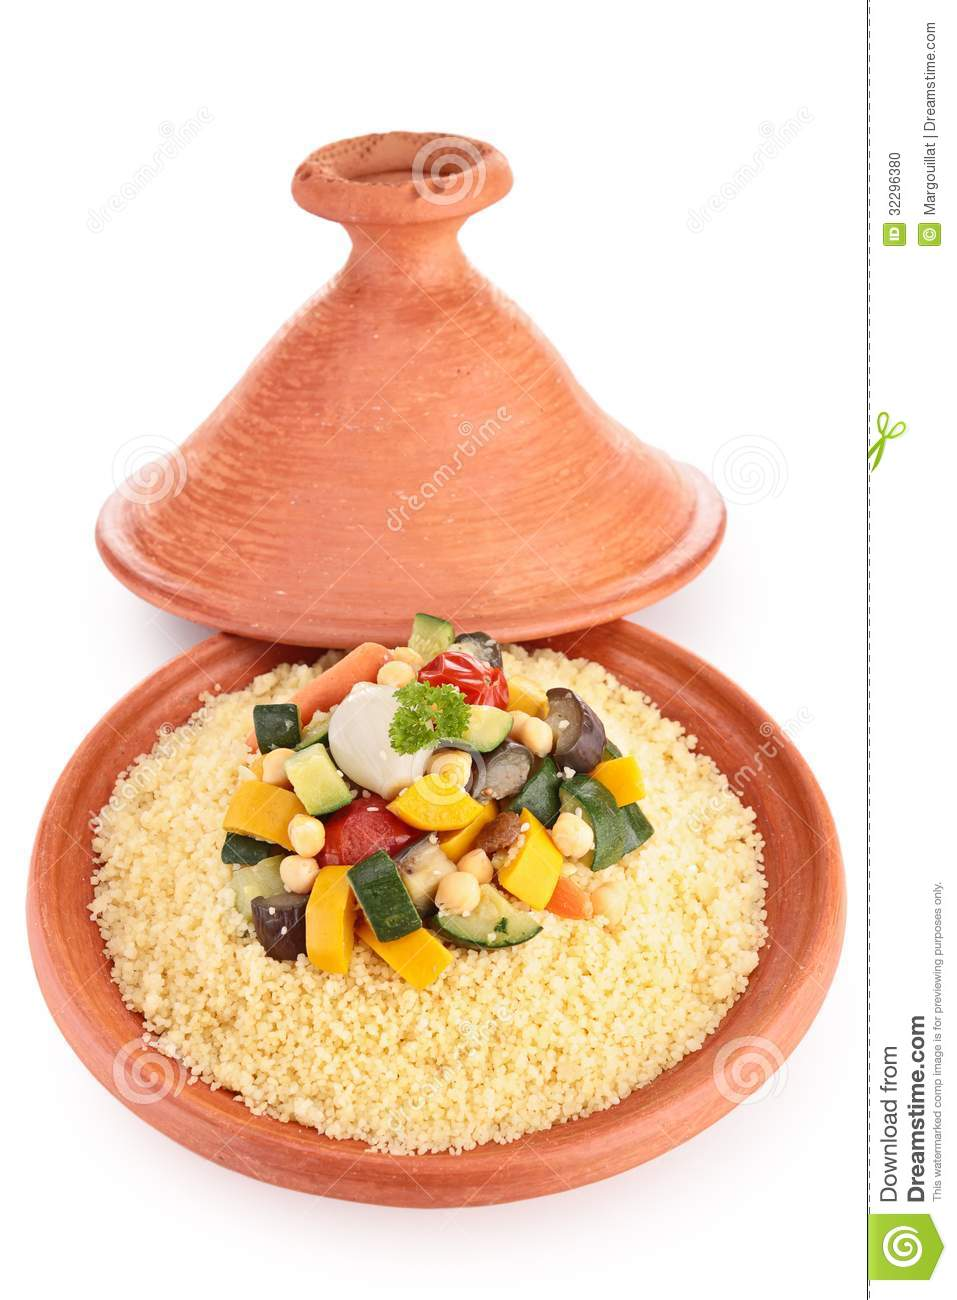 Cuscus clipart #5, Download drawings